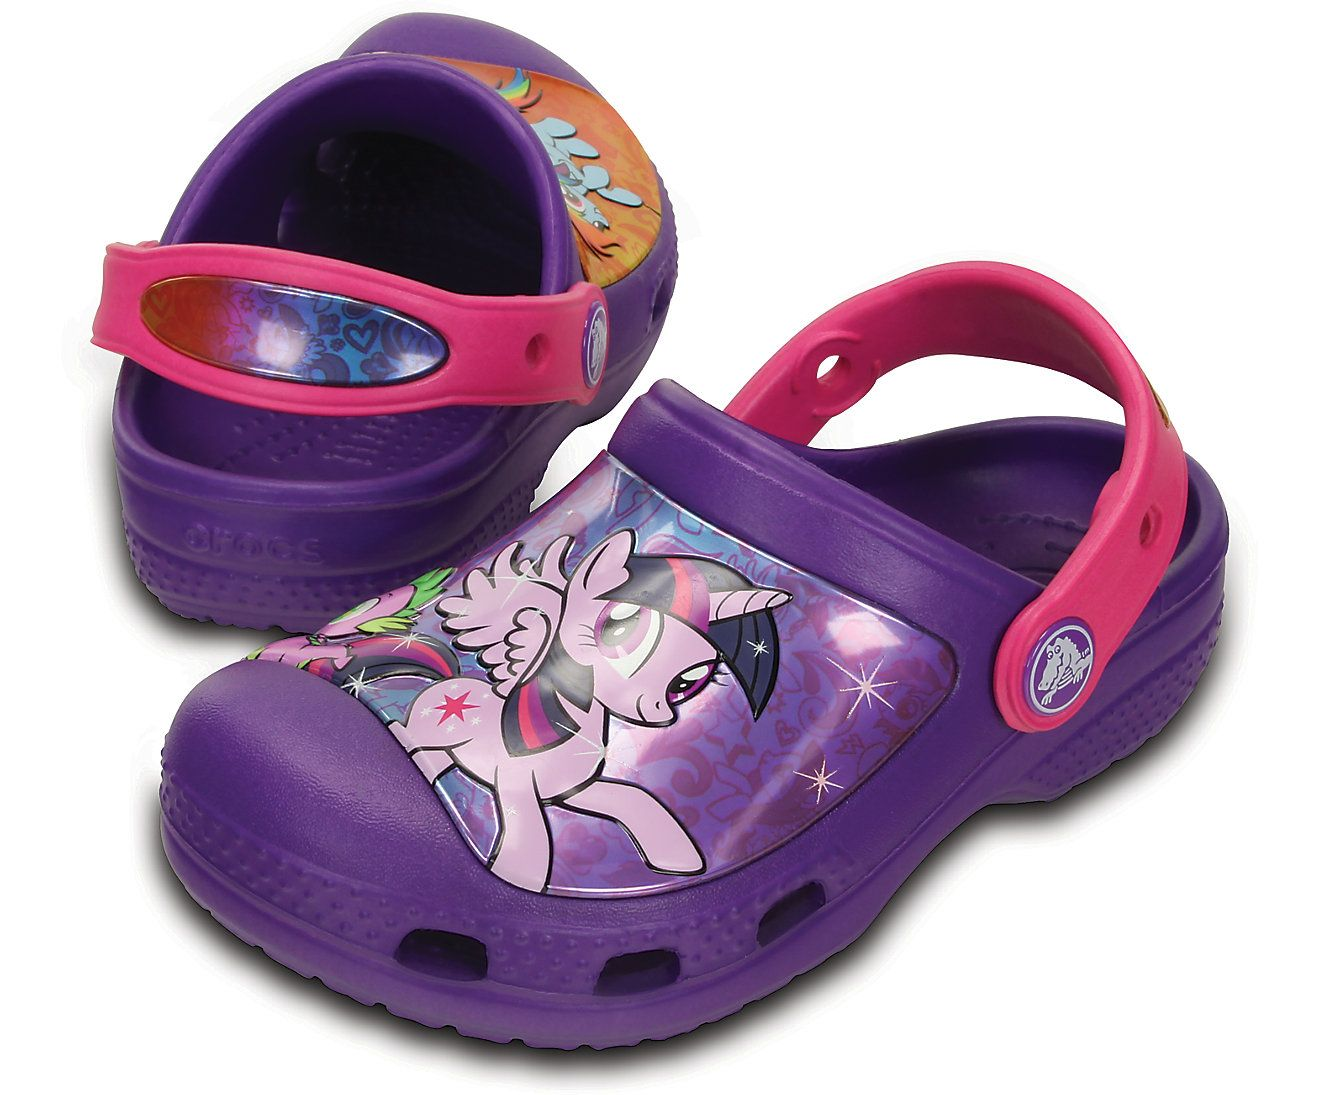 My Little Pony Crocs Now Available in